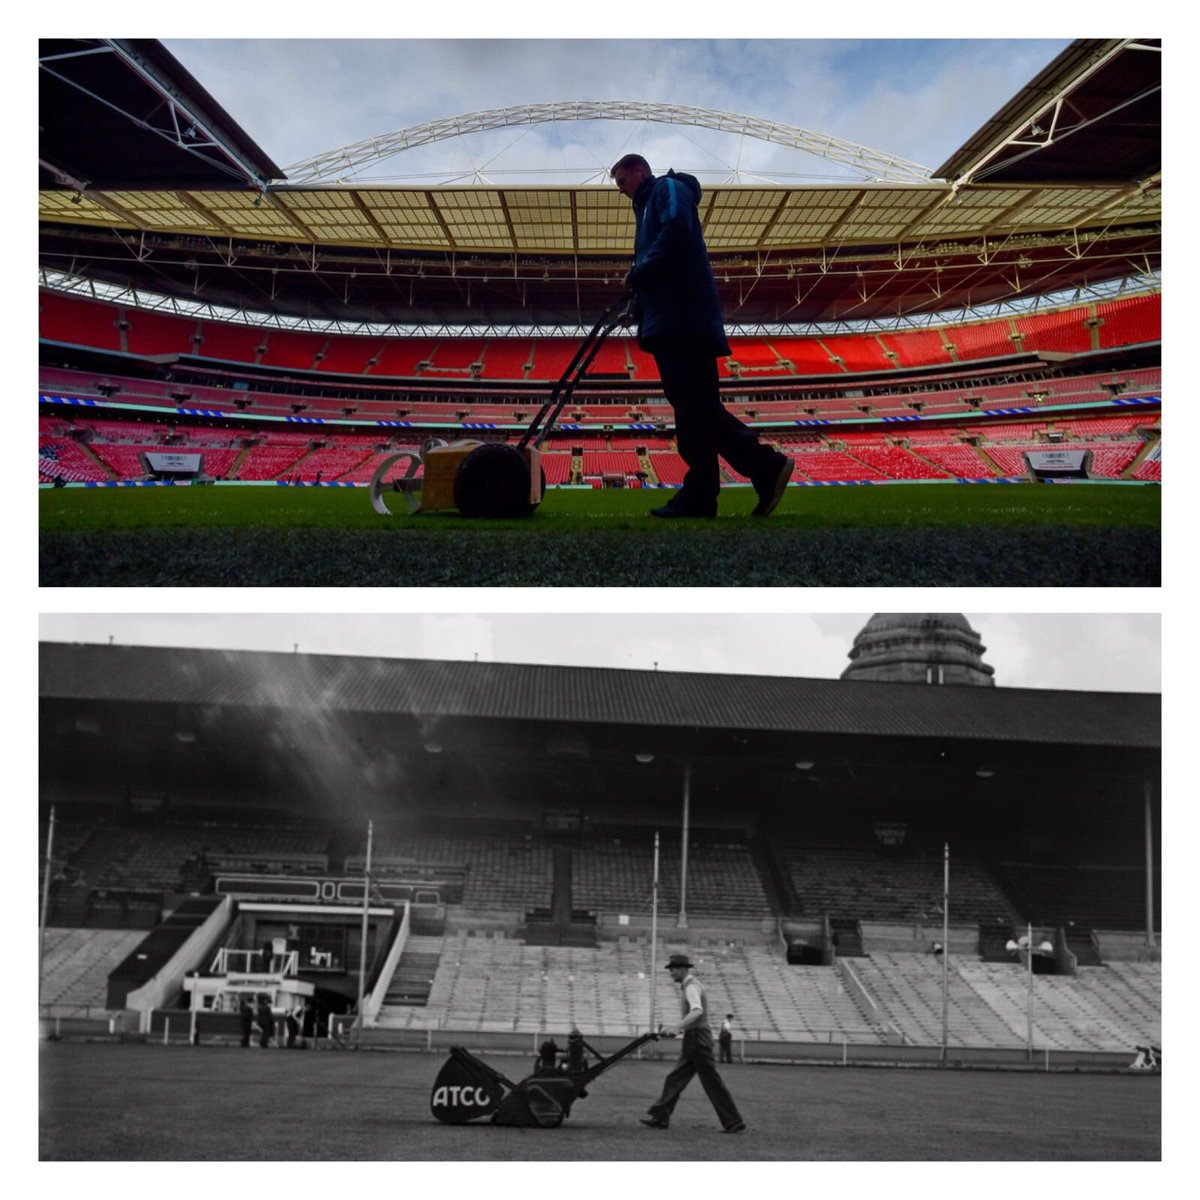 Today's #ThenAndNow 👇  A throwback to Wembley 1939. The groundsman prepares the pitch ahead of the FA Cup final   🔁   Fast forward 79 years to 2017 and the pitch gets the same treatment ahead of 🏴🆚🇩🇪 https://t.co/YGm5WHyHq9